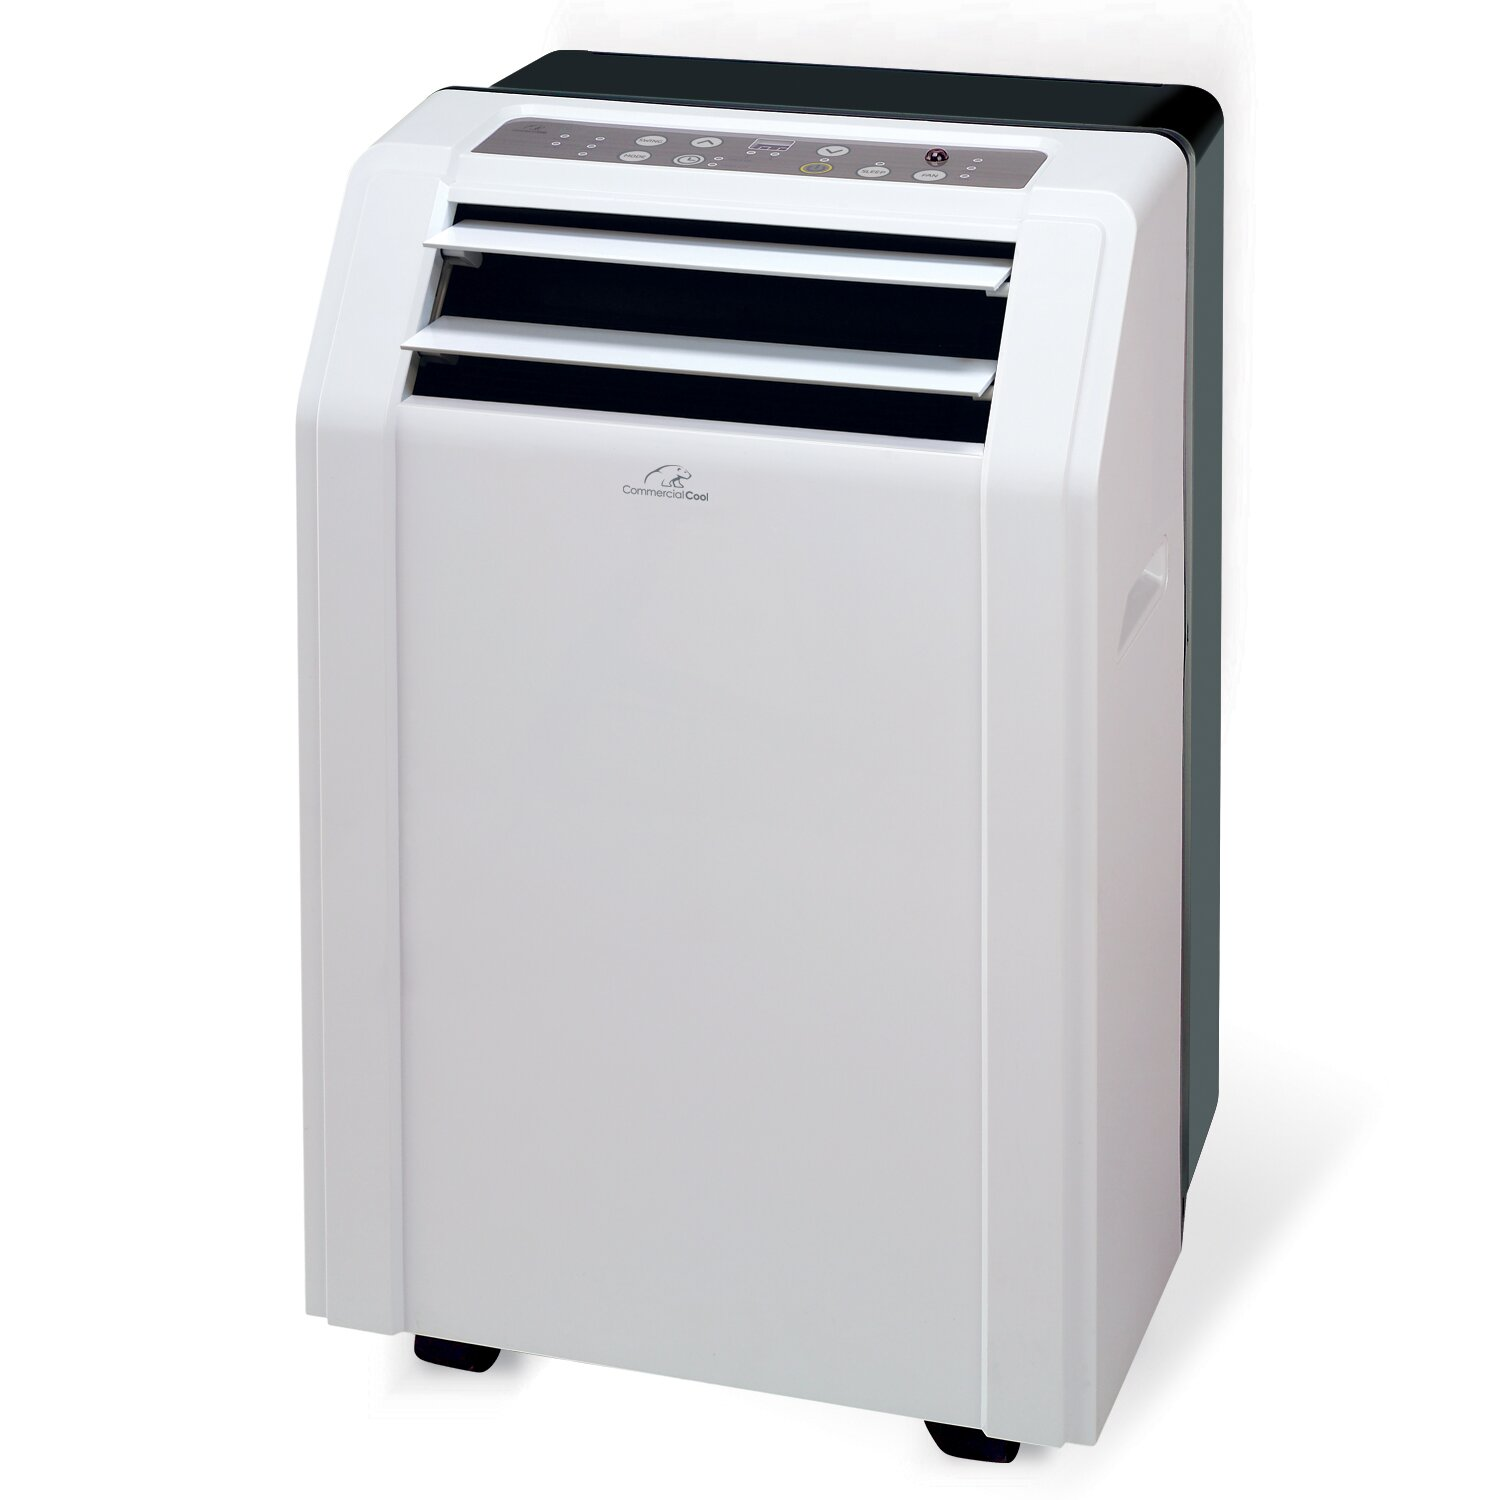 BTU 3 in 1 Portable Air Conditioner with Remote & Reviews Wayfair #0F1219